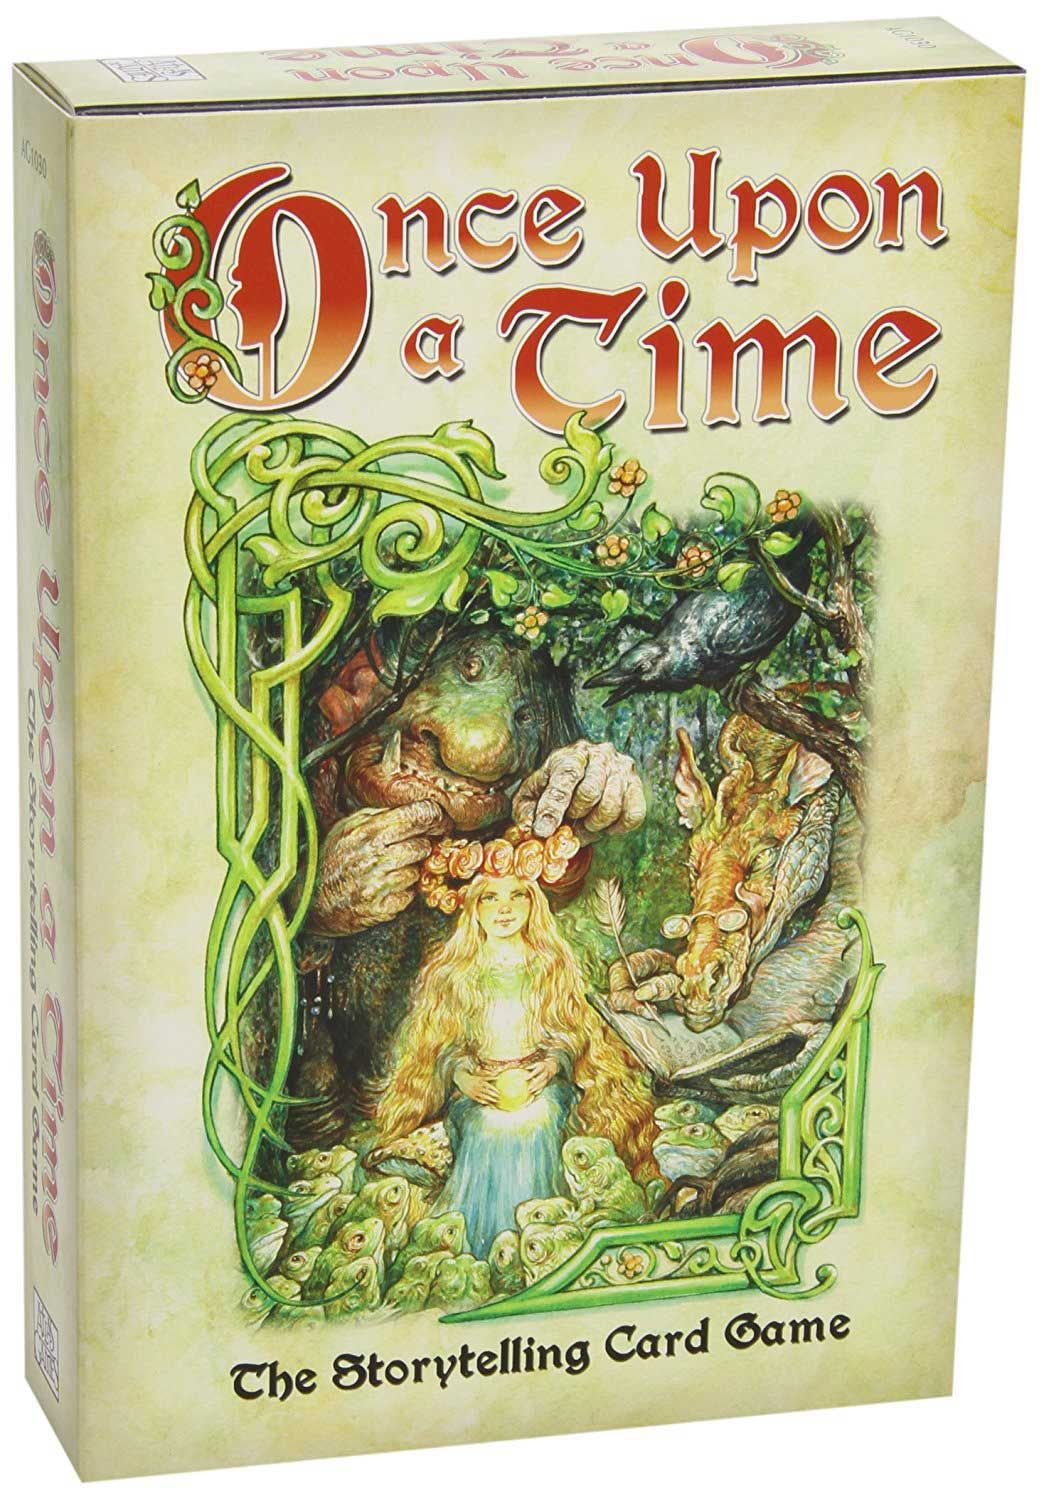 Once upon a time game